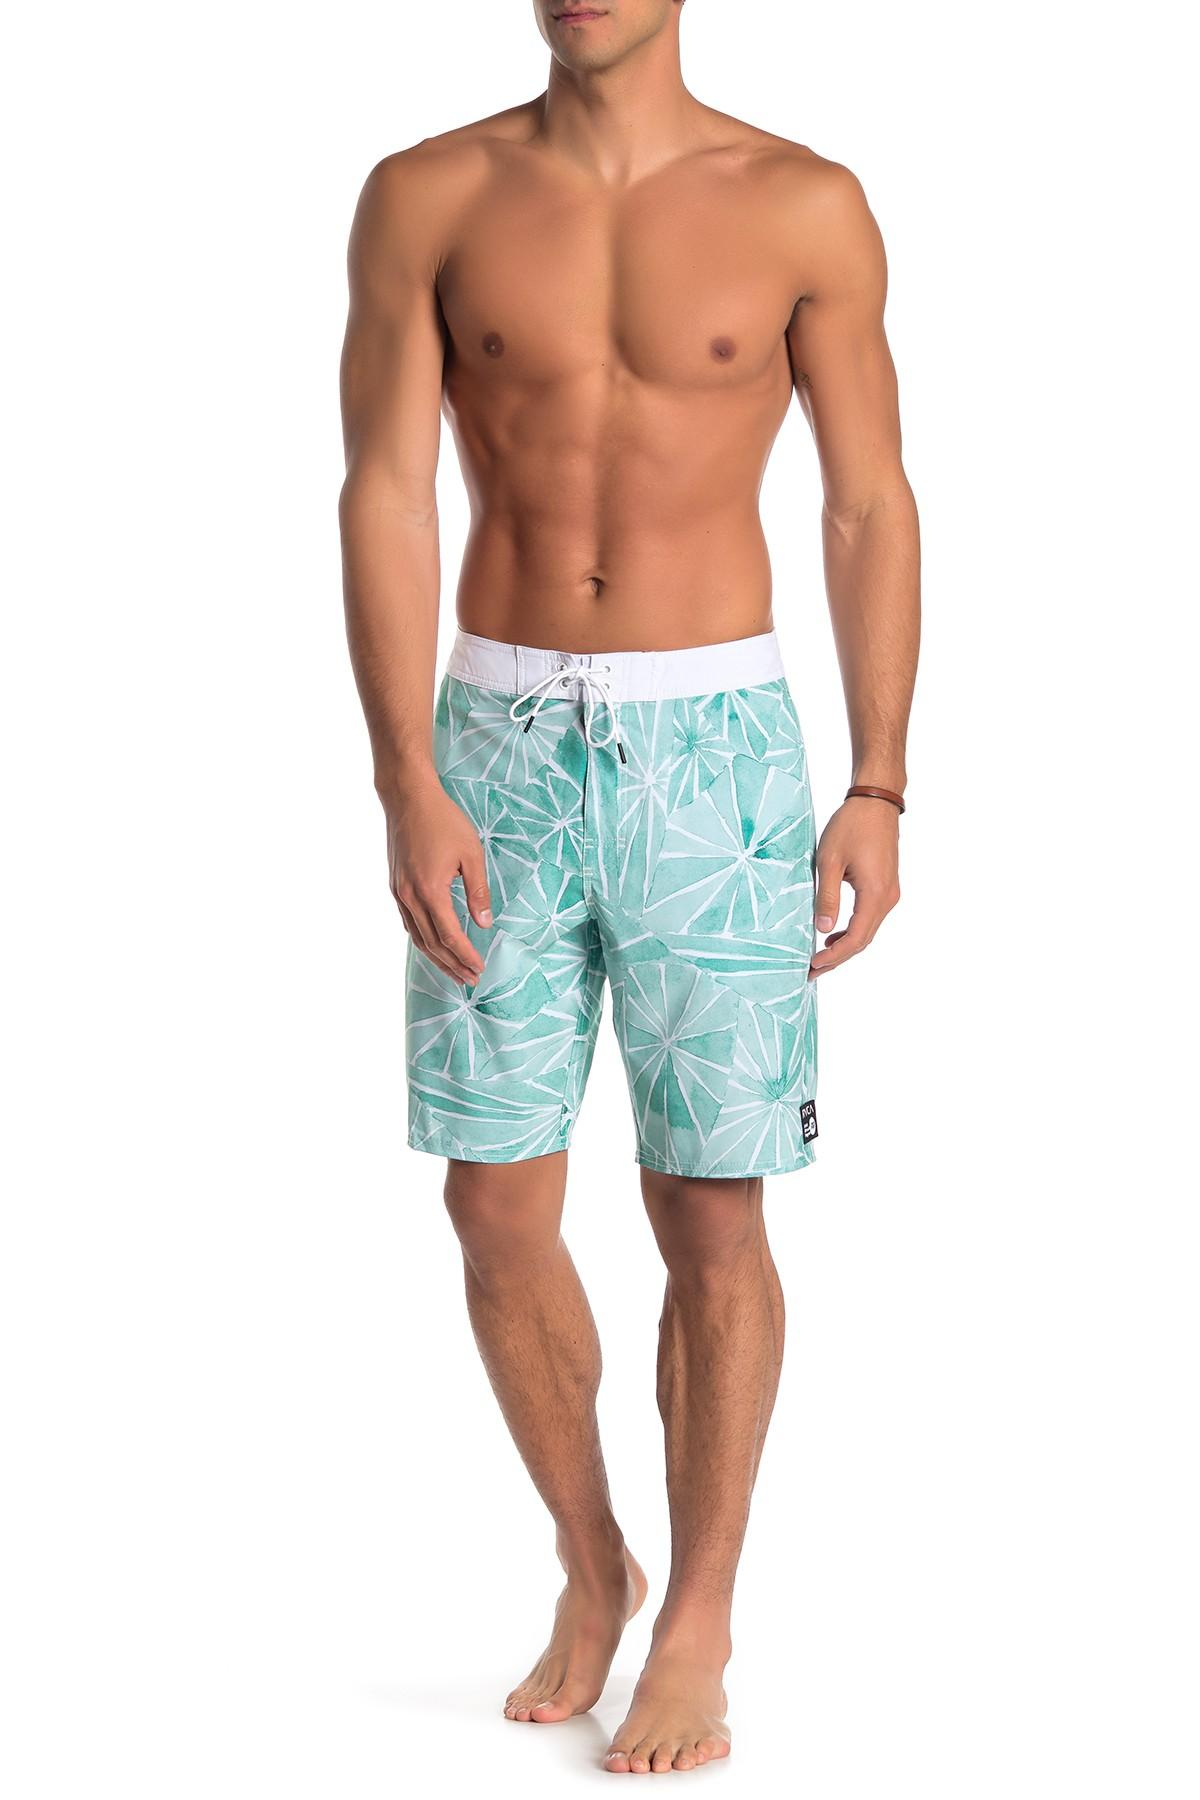 7c49e84a1b60d Lyst - RVCA Blade Trunk in Blue for Men - Save 47%